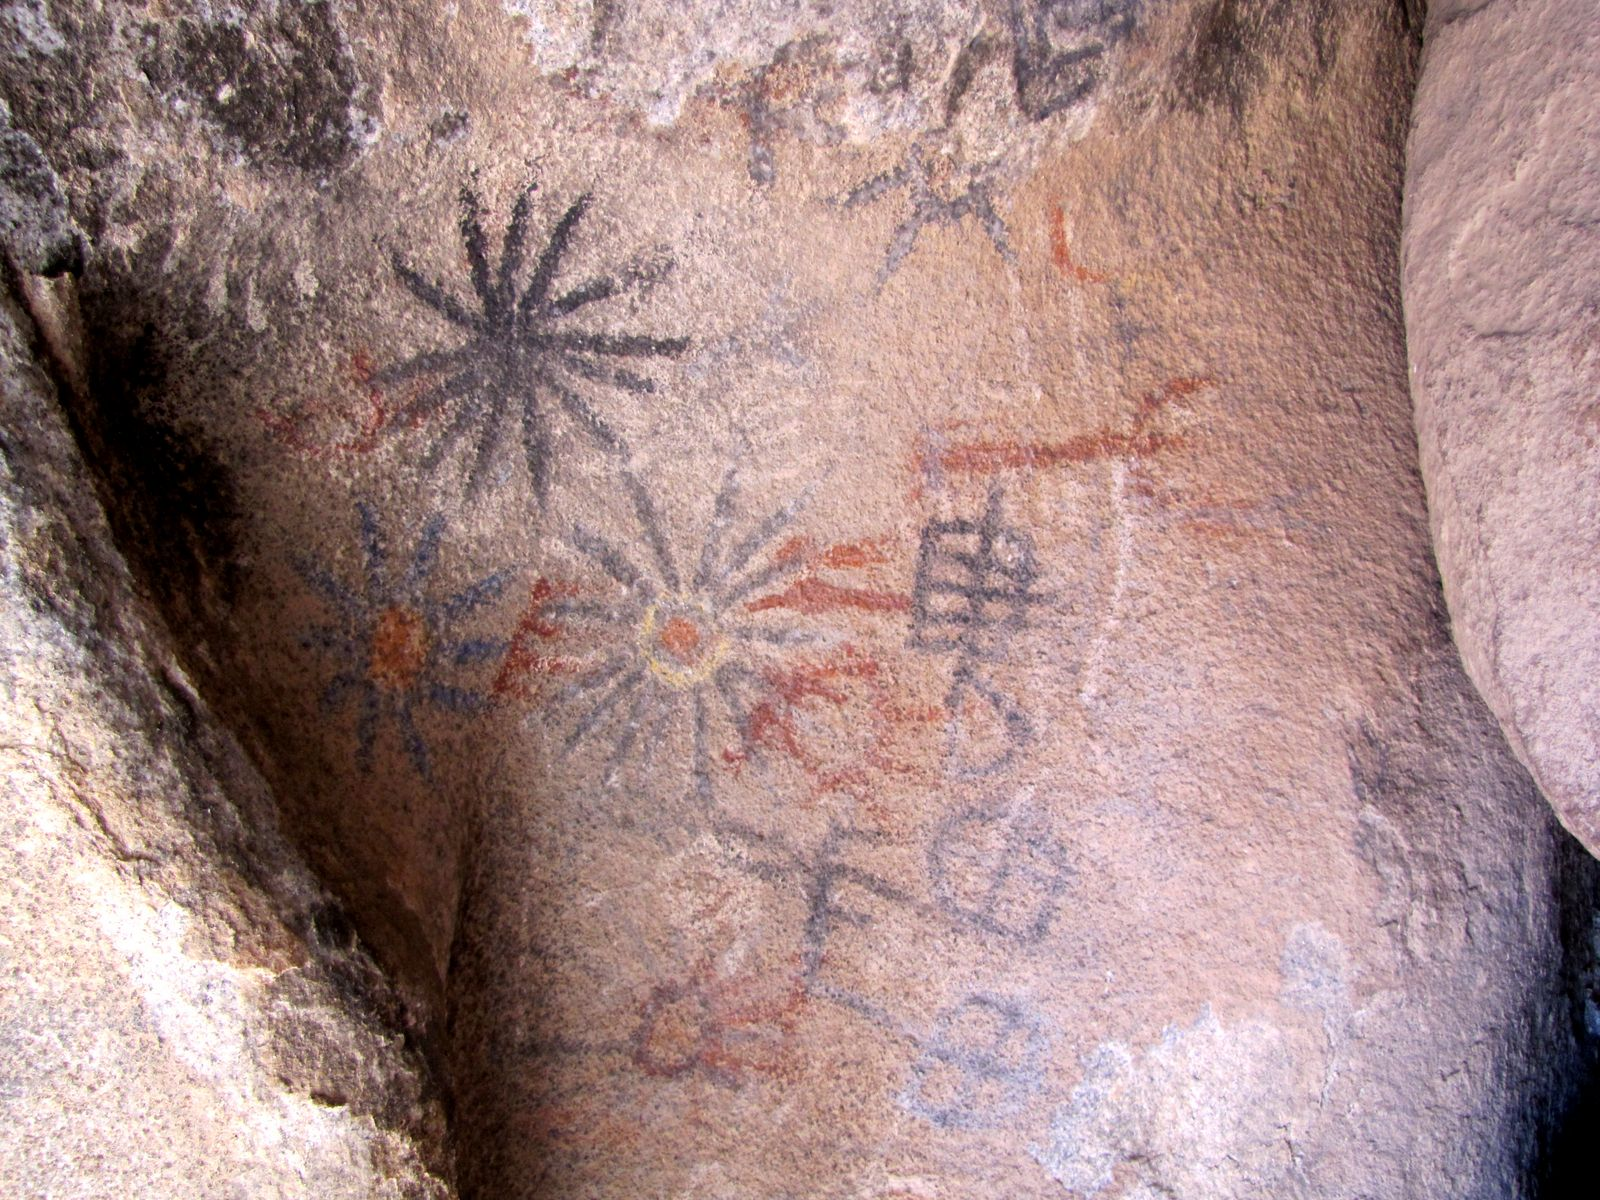 Since we were in the area we took a quick detour to show the Indian Hill pictographs to the group.